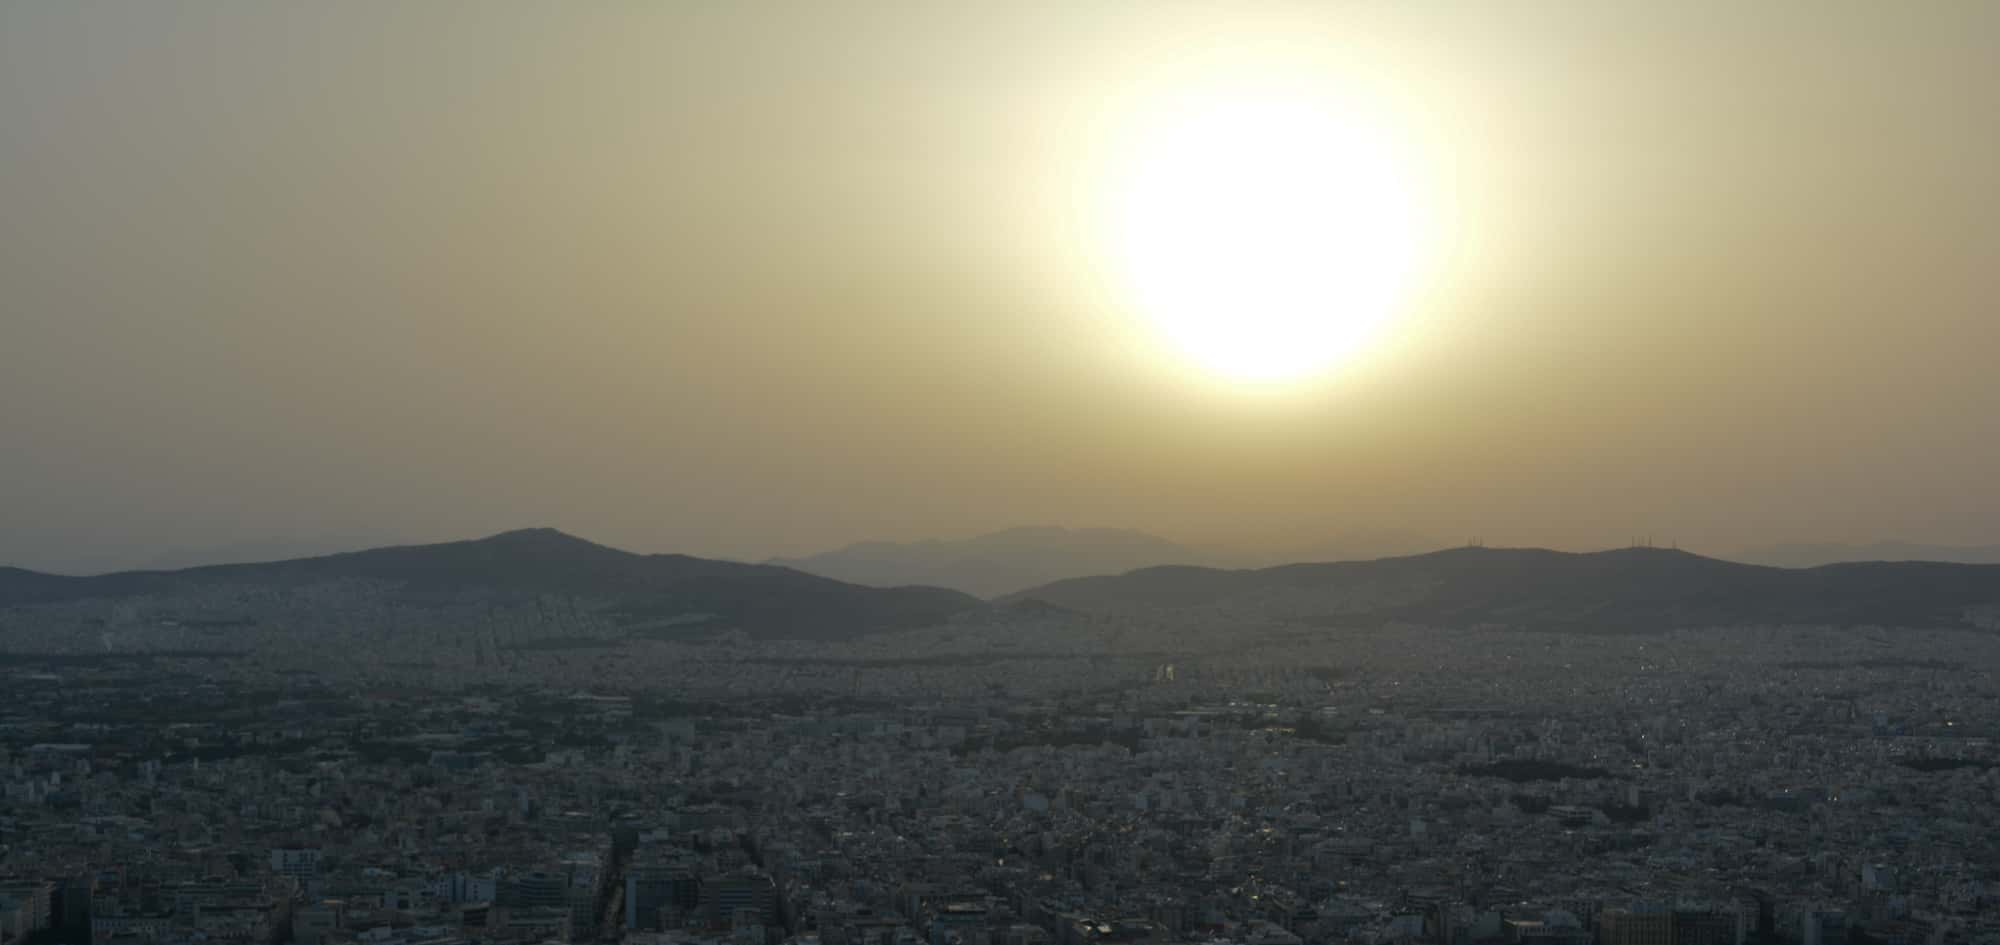 Mount Lycabettus Sunset